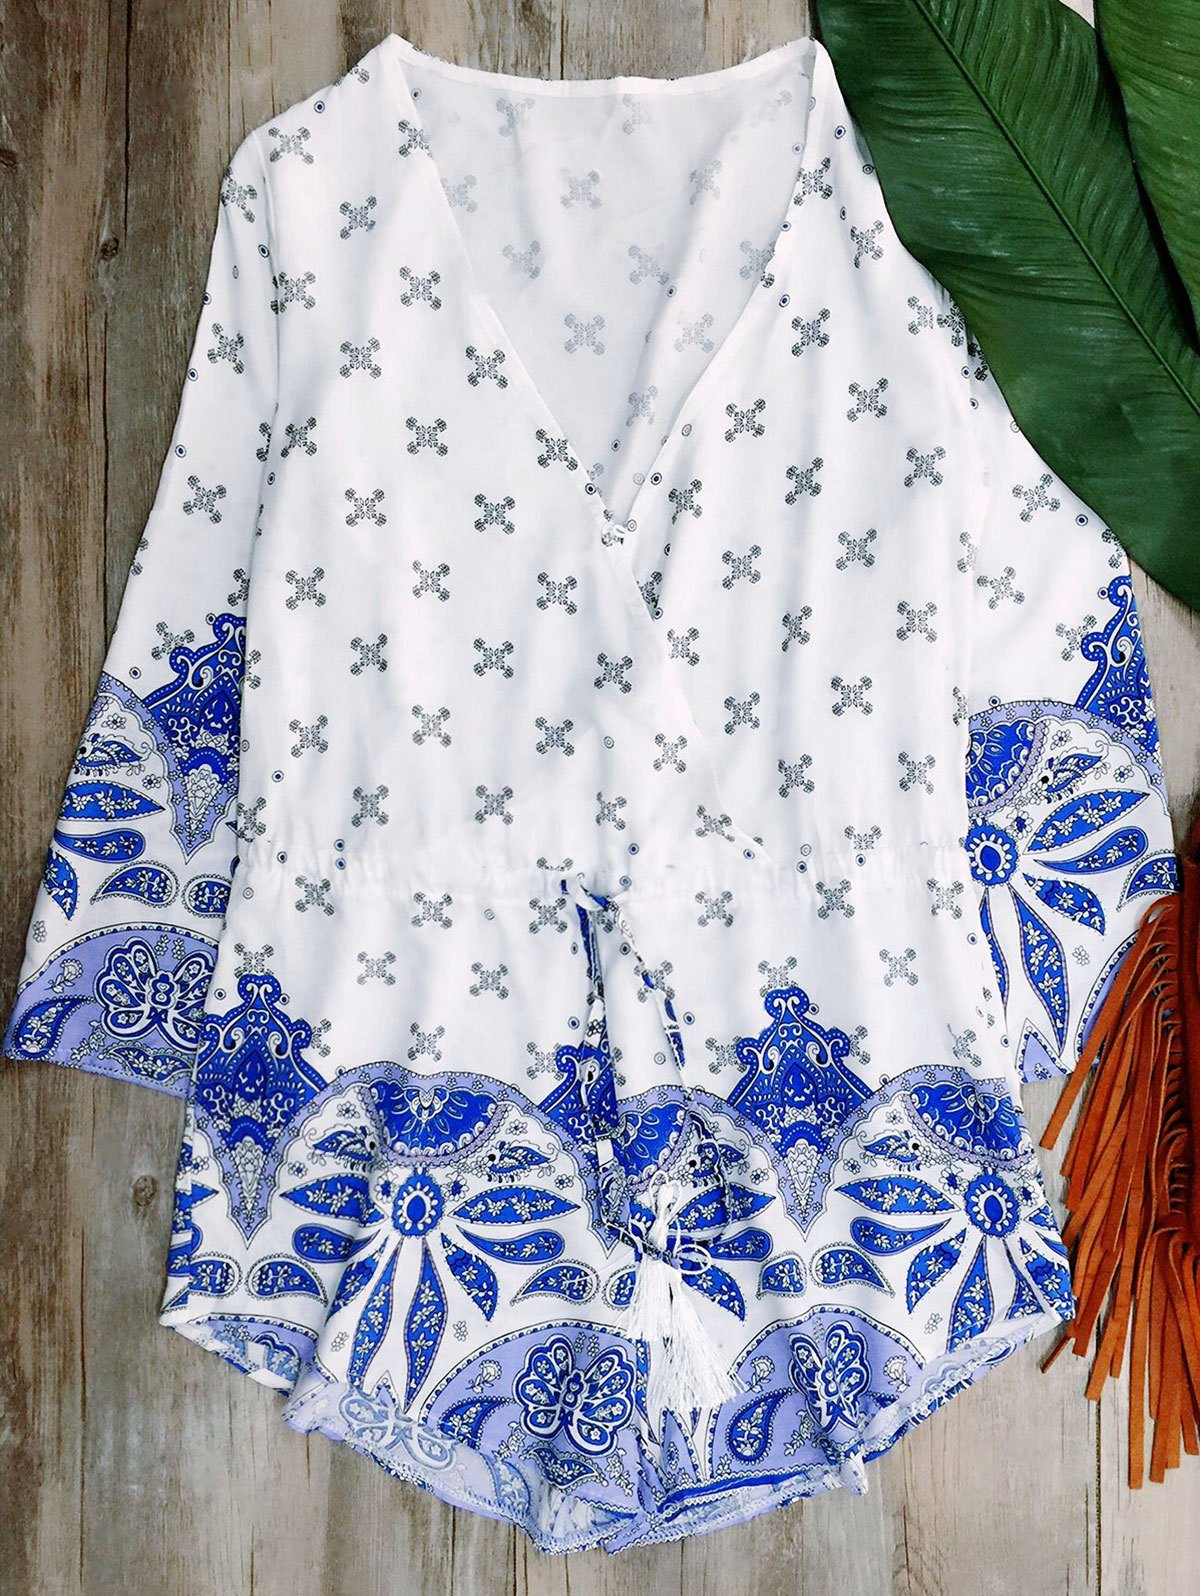 Long Sleeve Porcelain Print PlaysuitClothes<br><br><br>Size: M<br>Color: BLUE AND WHITE